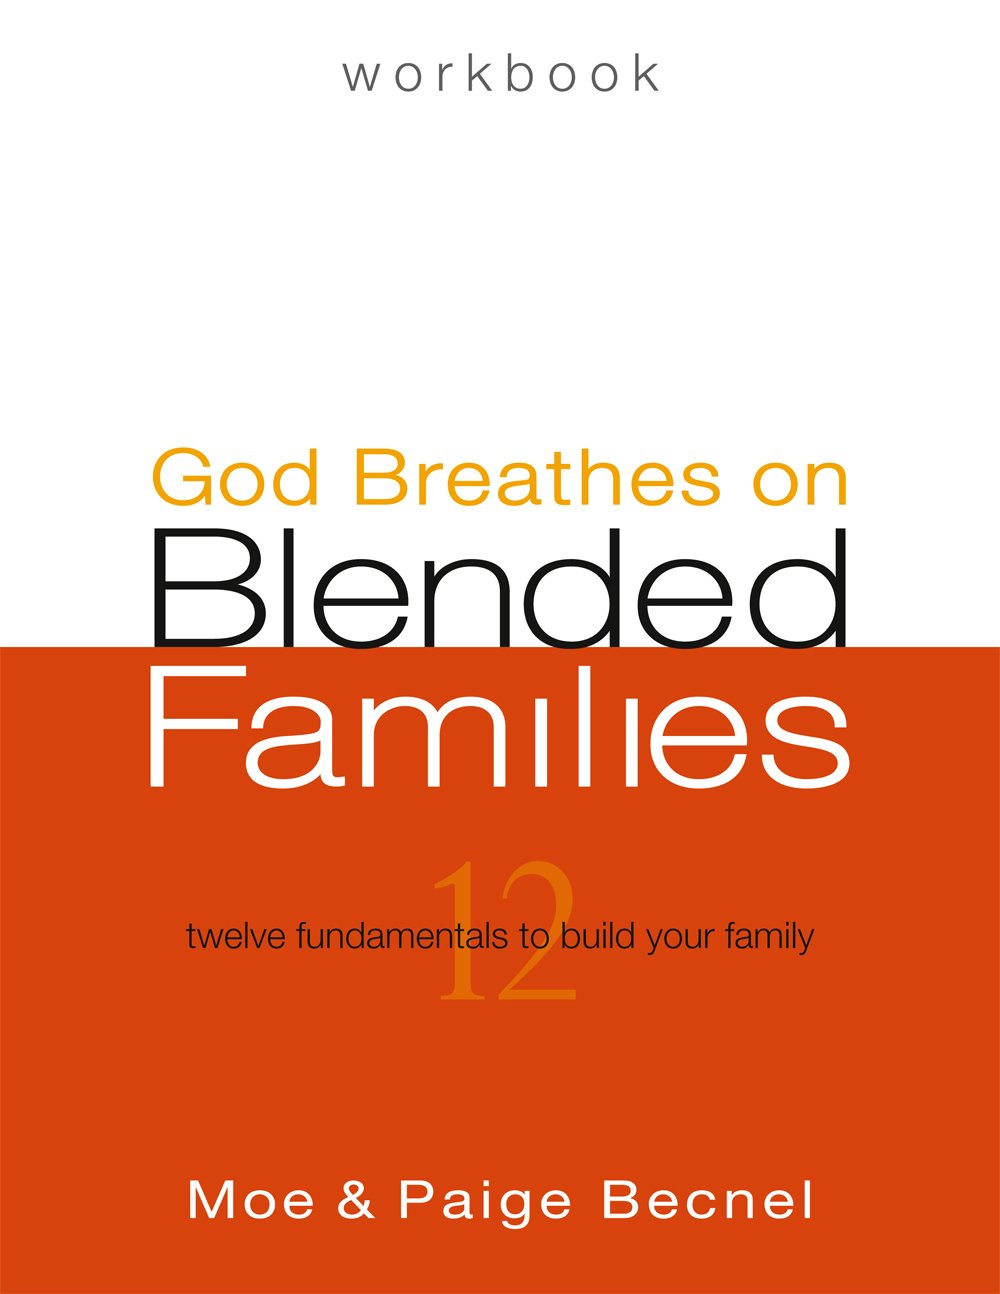 Workbooks god and family student workbook pdf : God Breathes on Blended Families Workbook - Second Edition: Moe ...